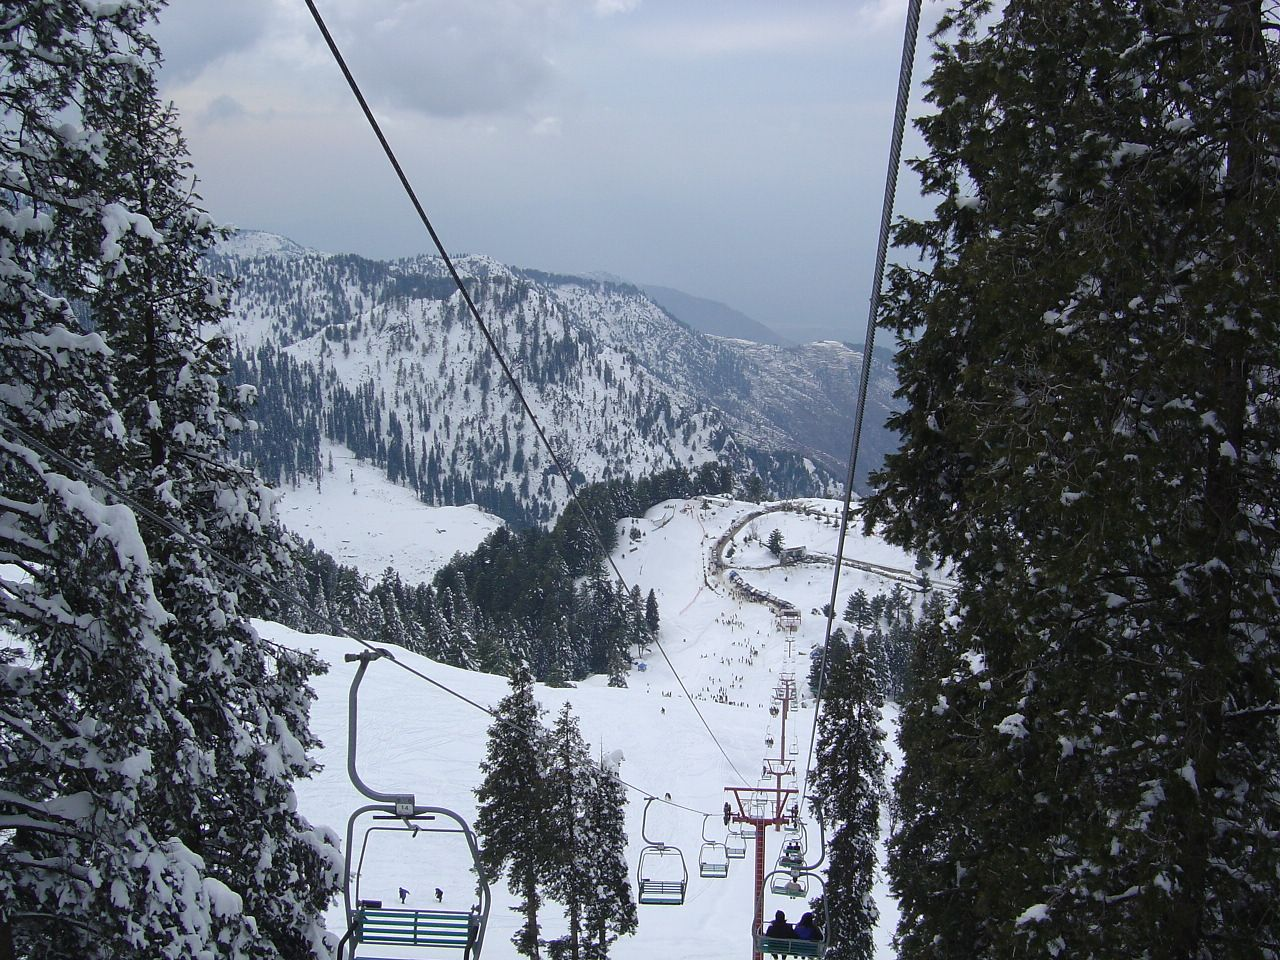 File:View From The Chairlift In Malam Jabba.JPG